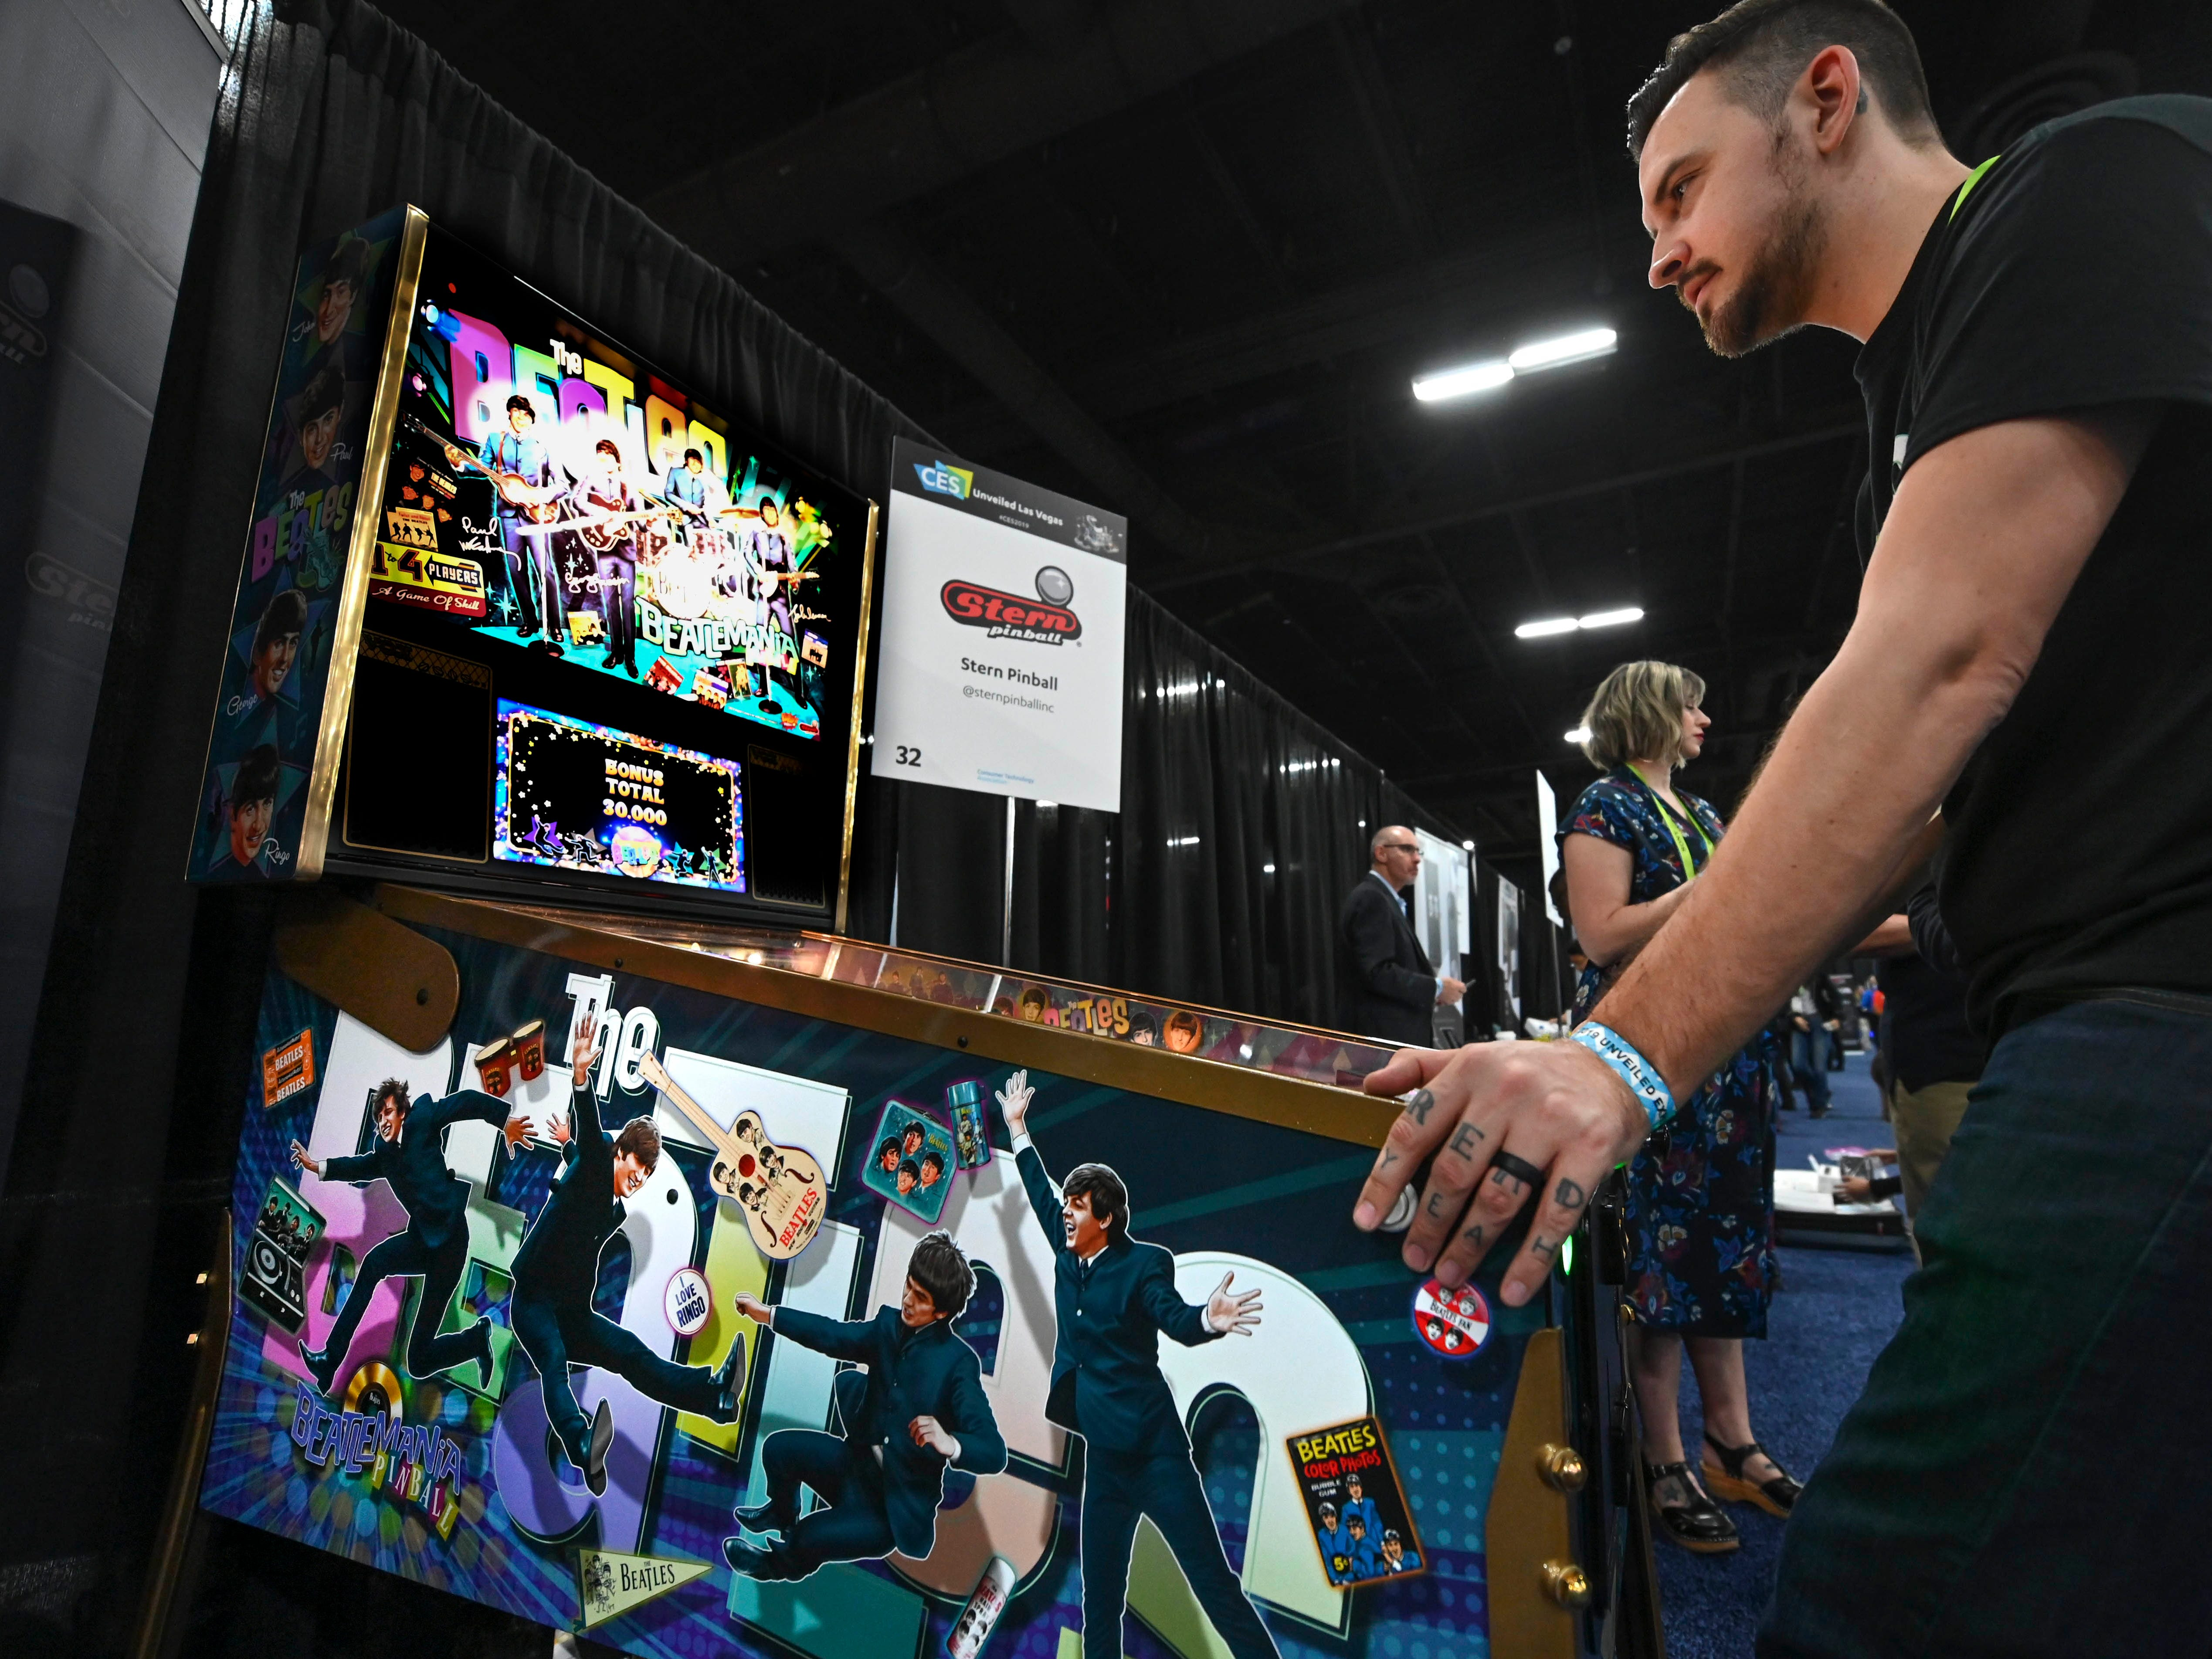 January 6, 2019; Las Vegas, NV, USA;  Jack Danger plays Stern Pinball's latest game based on The Beatles at CES Unveiled, a media preview event at the Mandalay Bay Convention Center. The pinball machine features nine hit Beatles song plus audio from John, Paul, George and Ringo. Mandatory Credit: Robert Hanashiro- USA TODAY NETWORK ORIG FILE ID:  20190106_ajw_usa_976.jpg